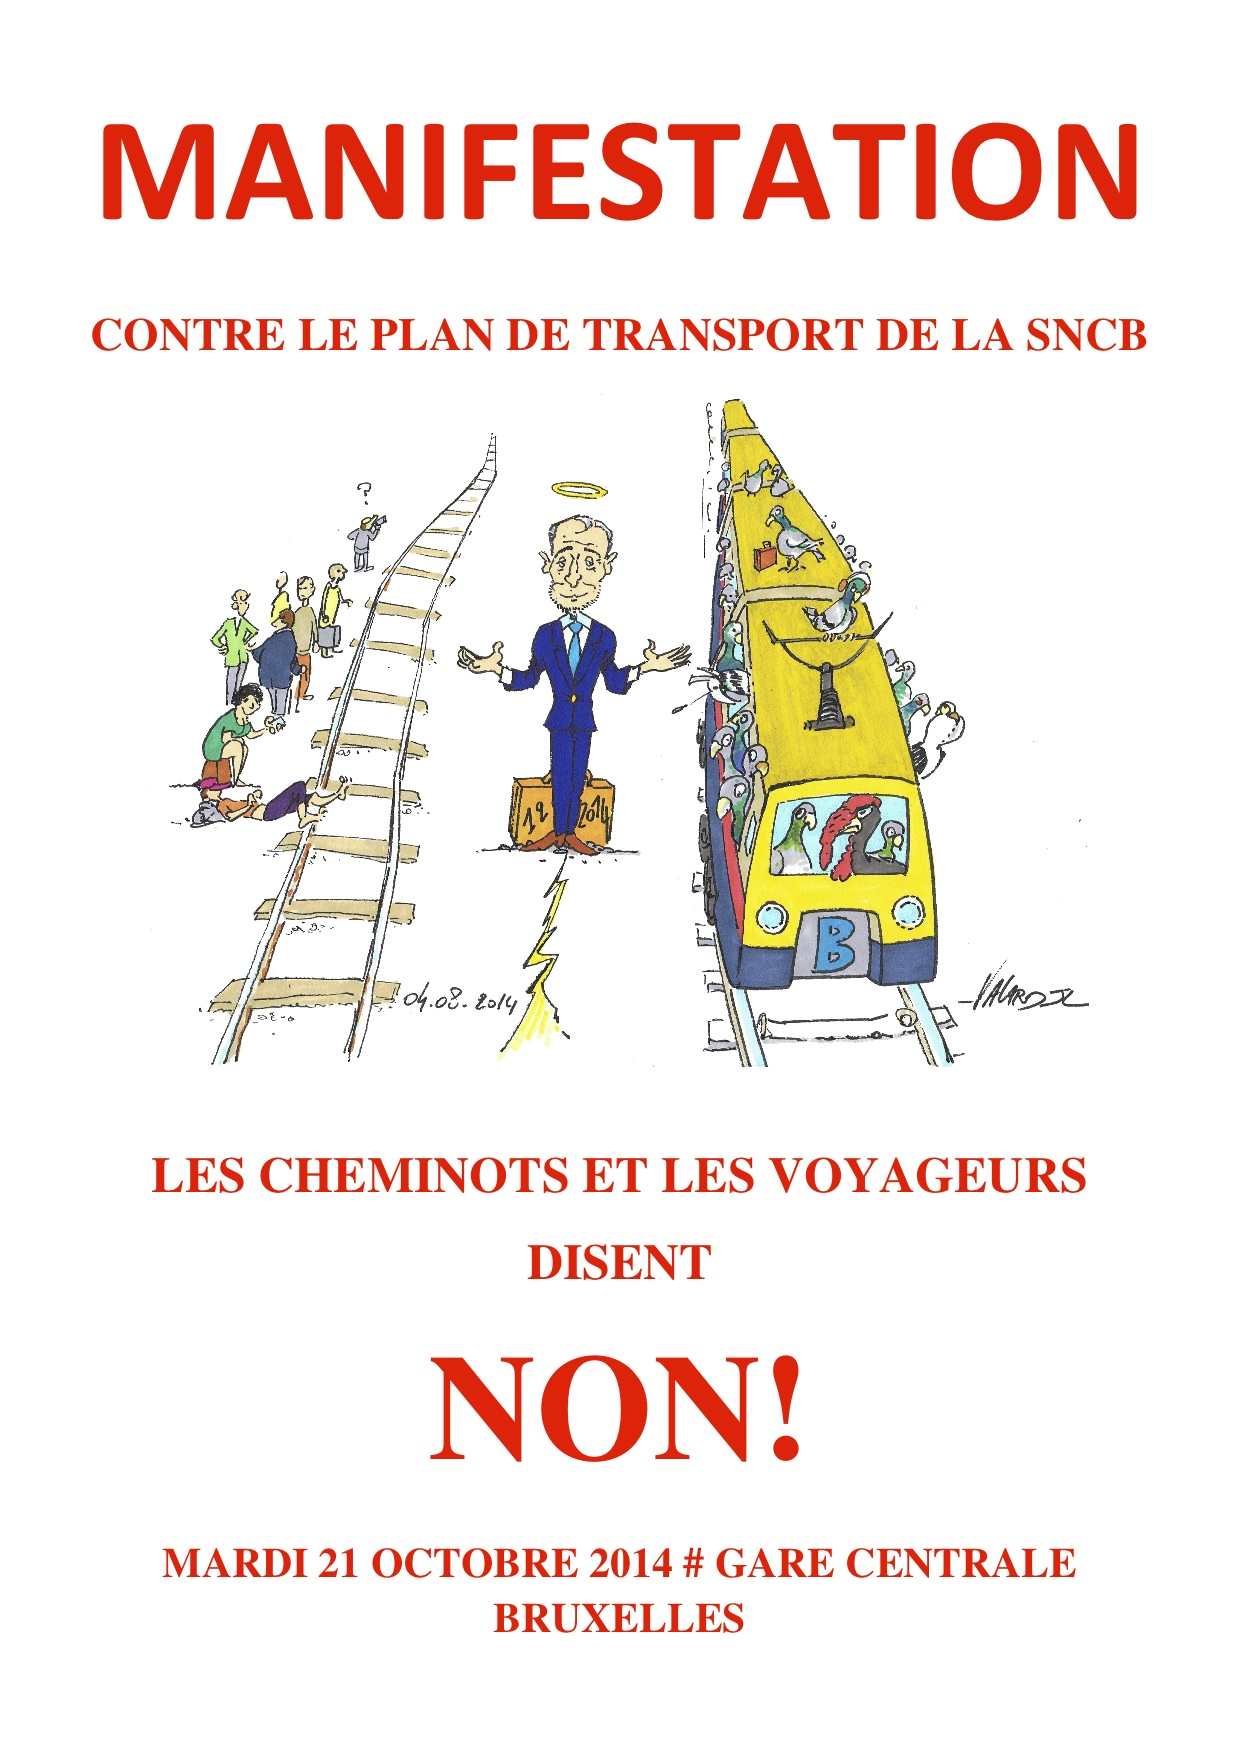 MANIF_PLAN_DE_TRANSPORT_AFFICHE_1_.jpg